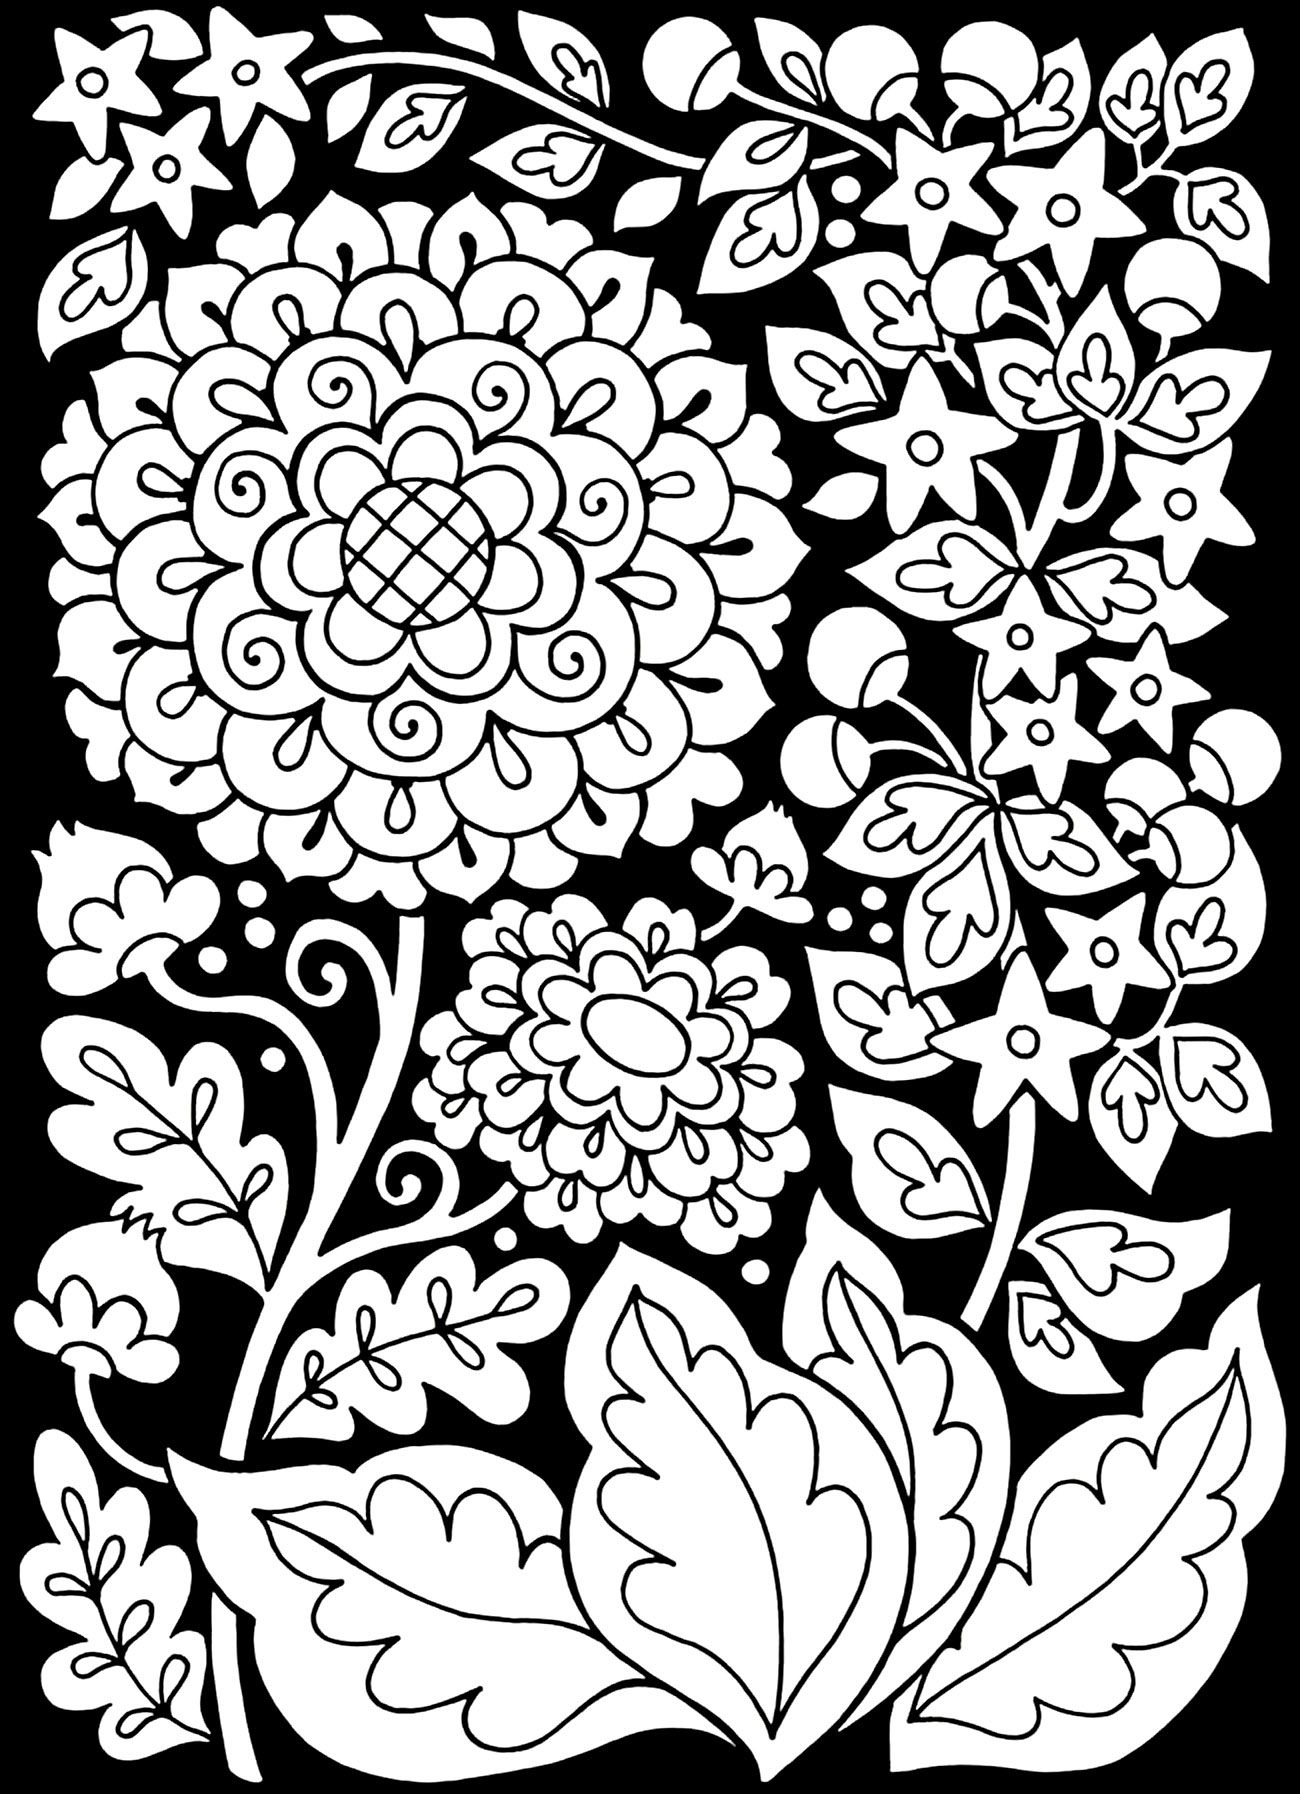 Free Coloring Page Coloring Adult Flowers Black Background Flowers